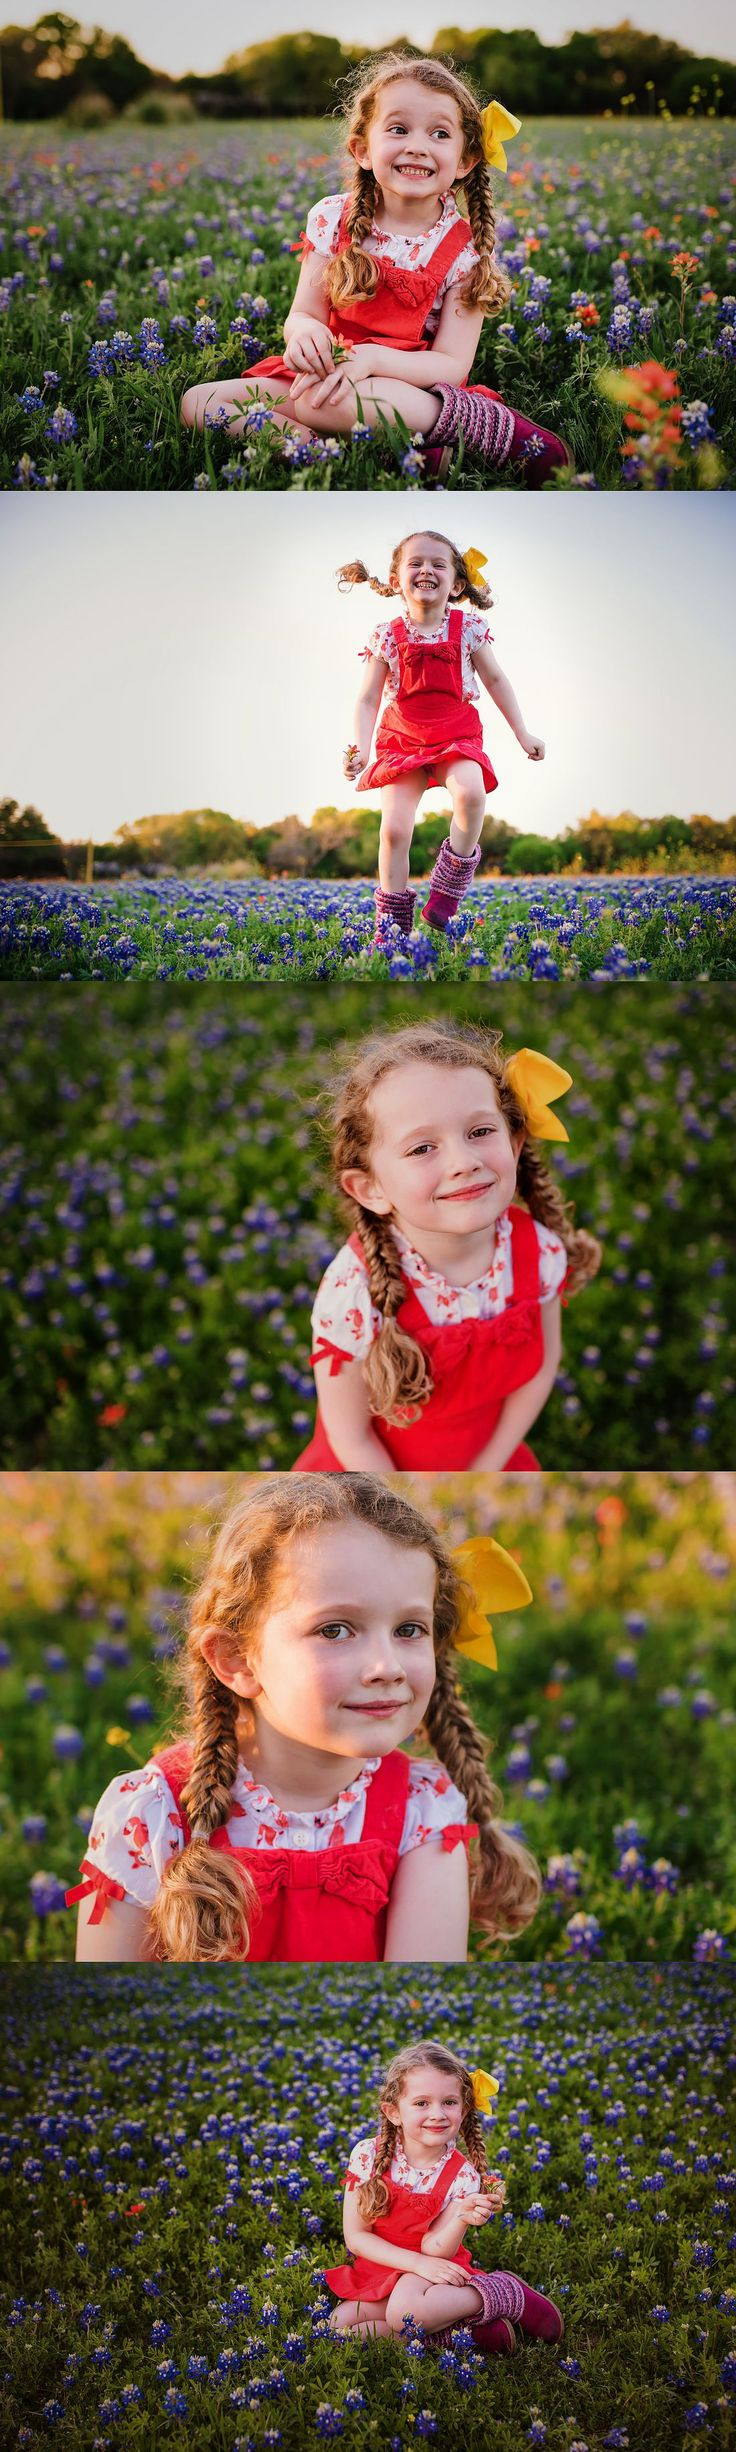 A bluebonnet session with a 5-year-old girl kindergartner in Waco Texas. Wild flowers offer lots of color, and so do the red overalls, the yellow bow in her hair, and her adorable braid. This little girl had lots of personality, and it showed!